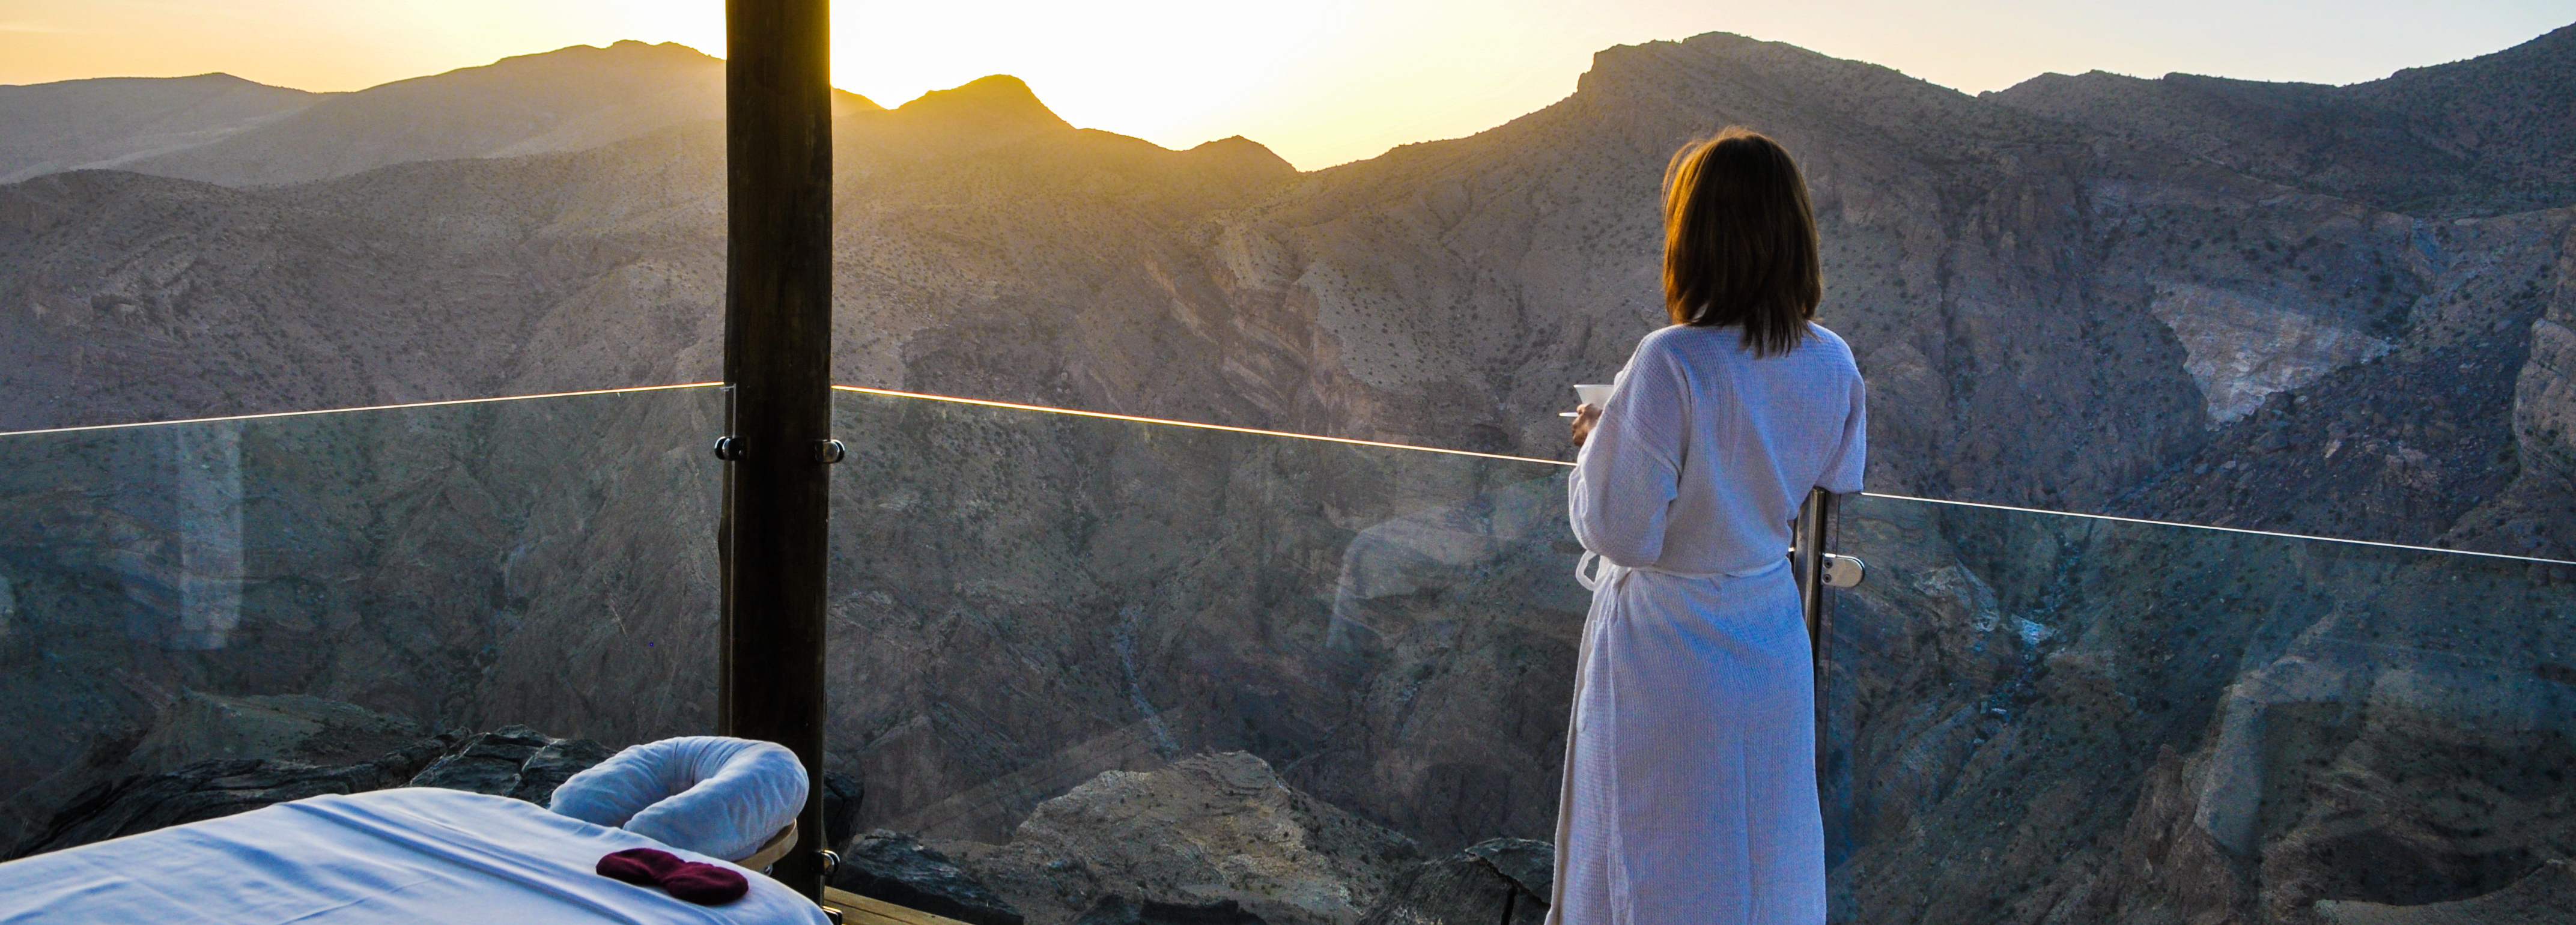 Alila-Jabal-Akhdar-Spa